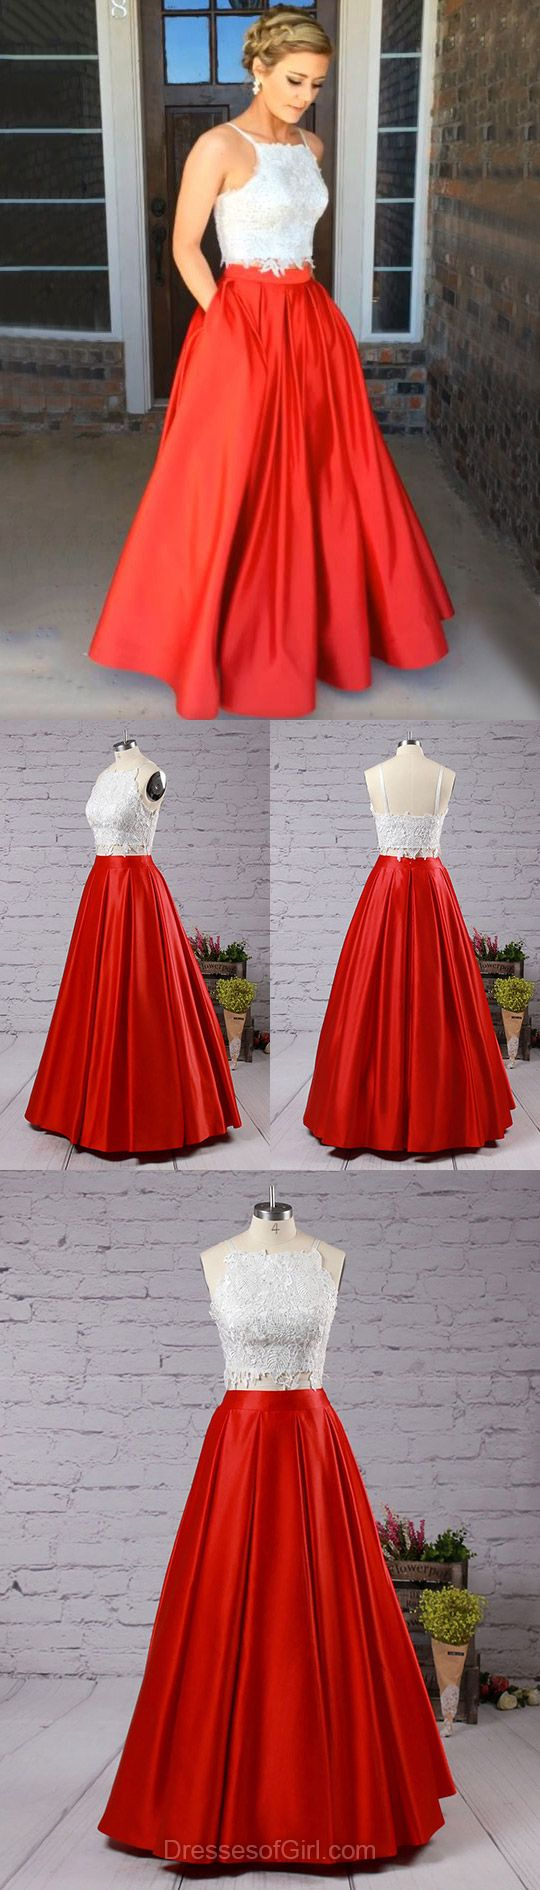 Fashion Two Piece Red Prom Dresses,Square Neck Satin Formal Party Gowns, Lace Open Back Evening Prom Dress